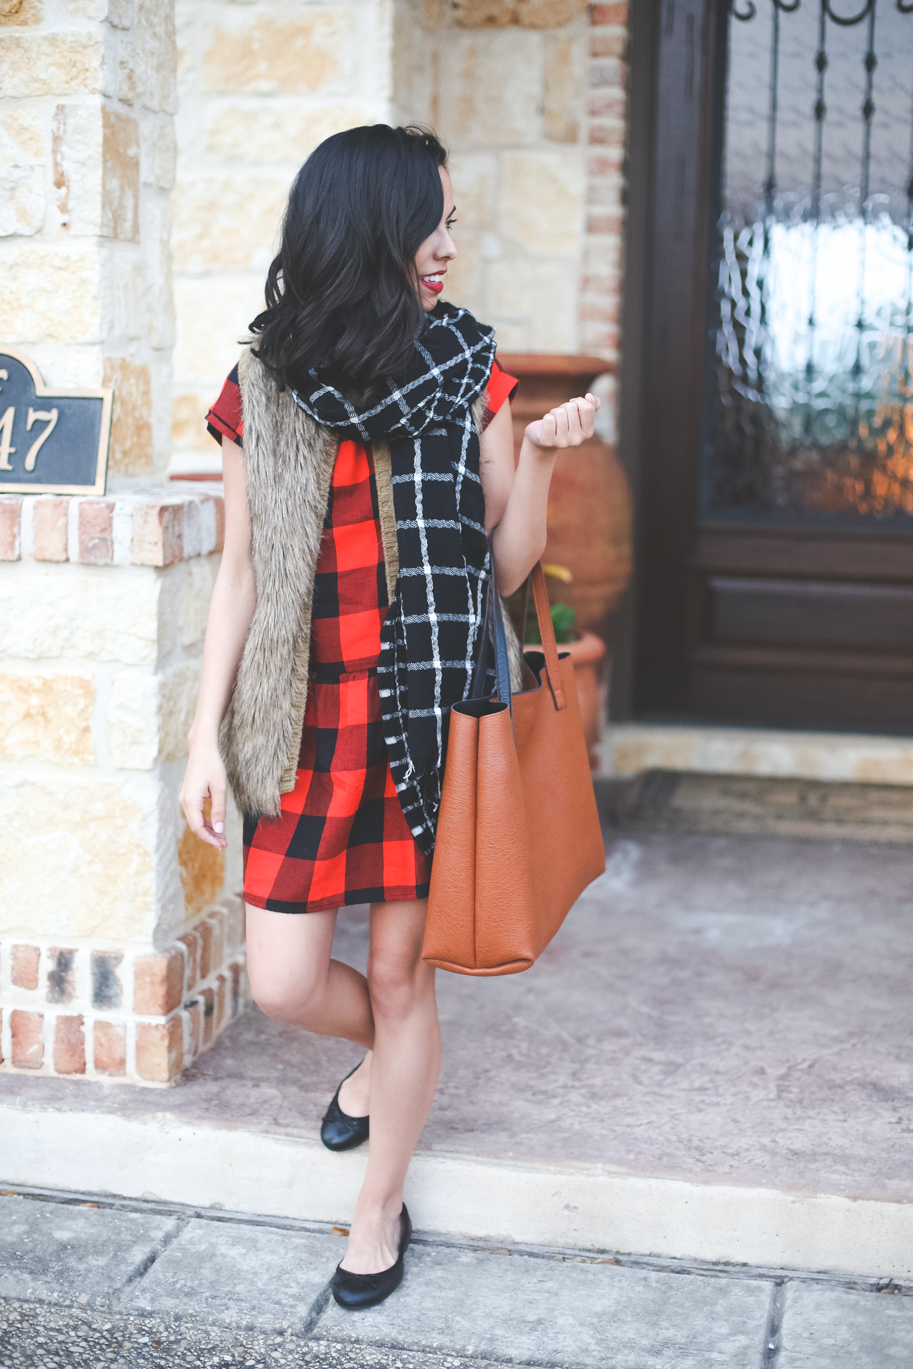 austin texas, austin fashion blog, austin fashion blogger, austin fashion, austin fashion blog, pinterest outfit, chambray shirt, austin style, austin style blog, austin style blogger, austin style bloggers, style bloggers